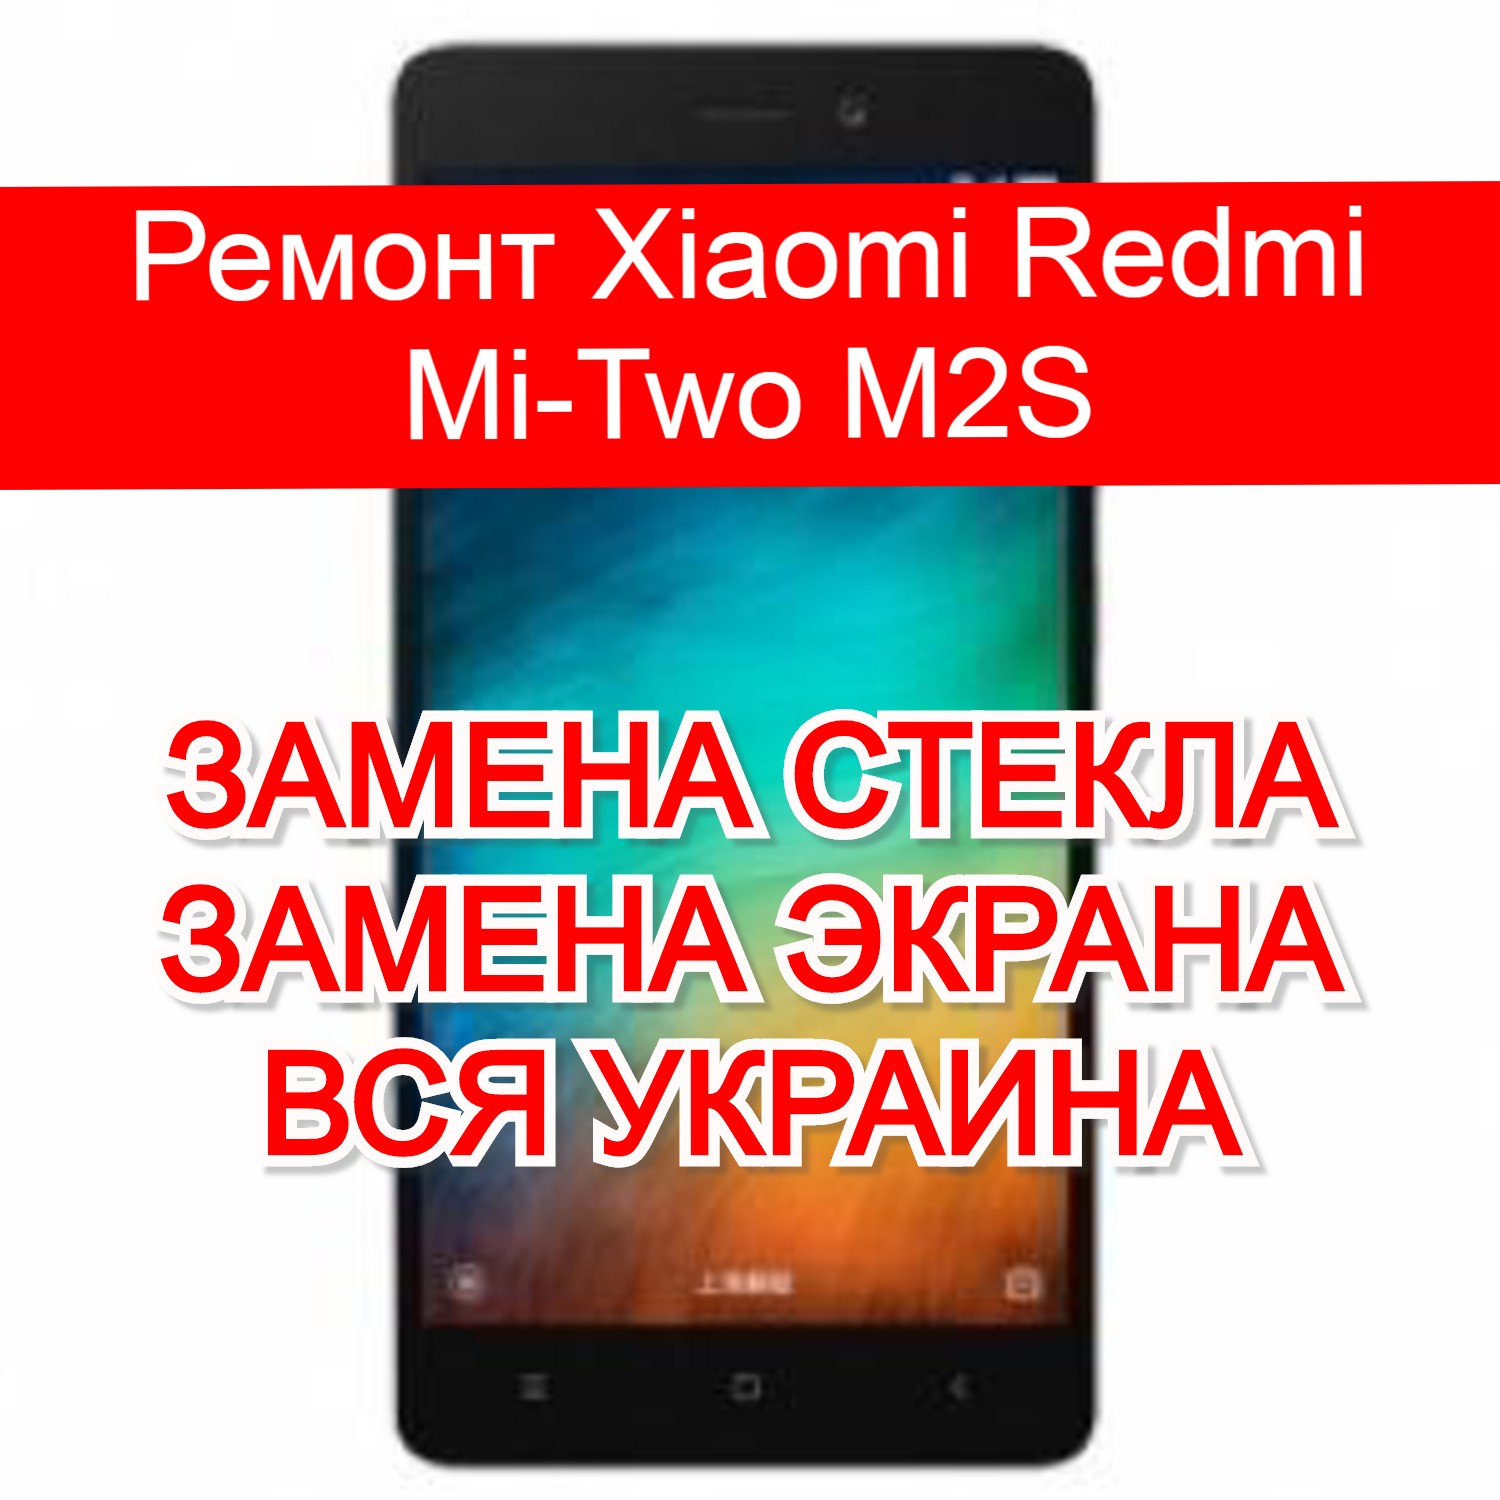 ремонт Xiaomi Redmi Mi-Two M2S замена стекла и экрана